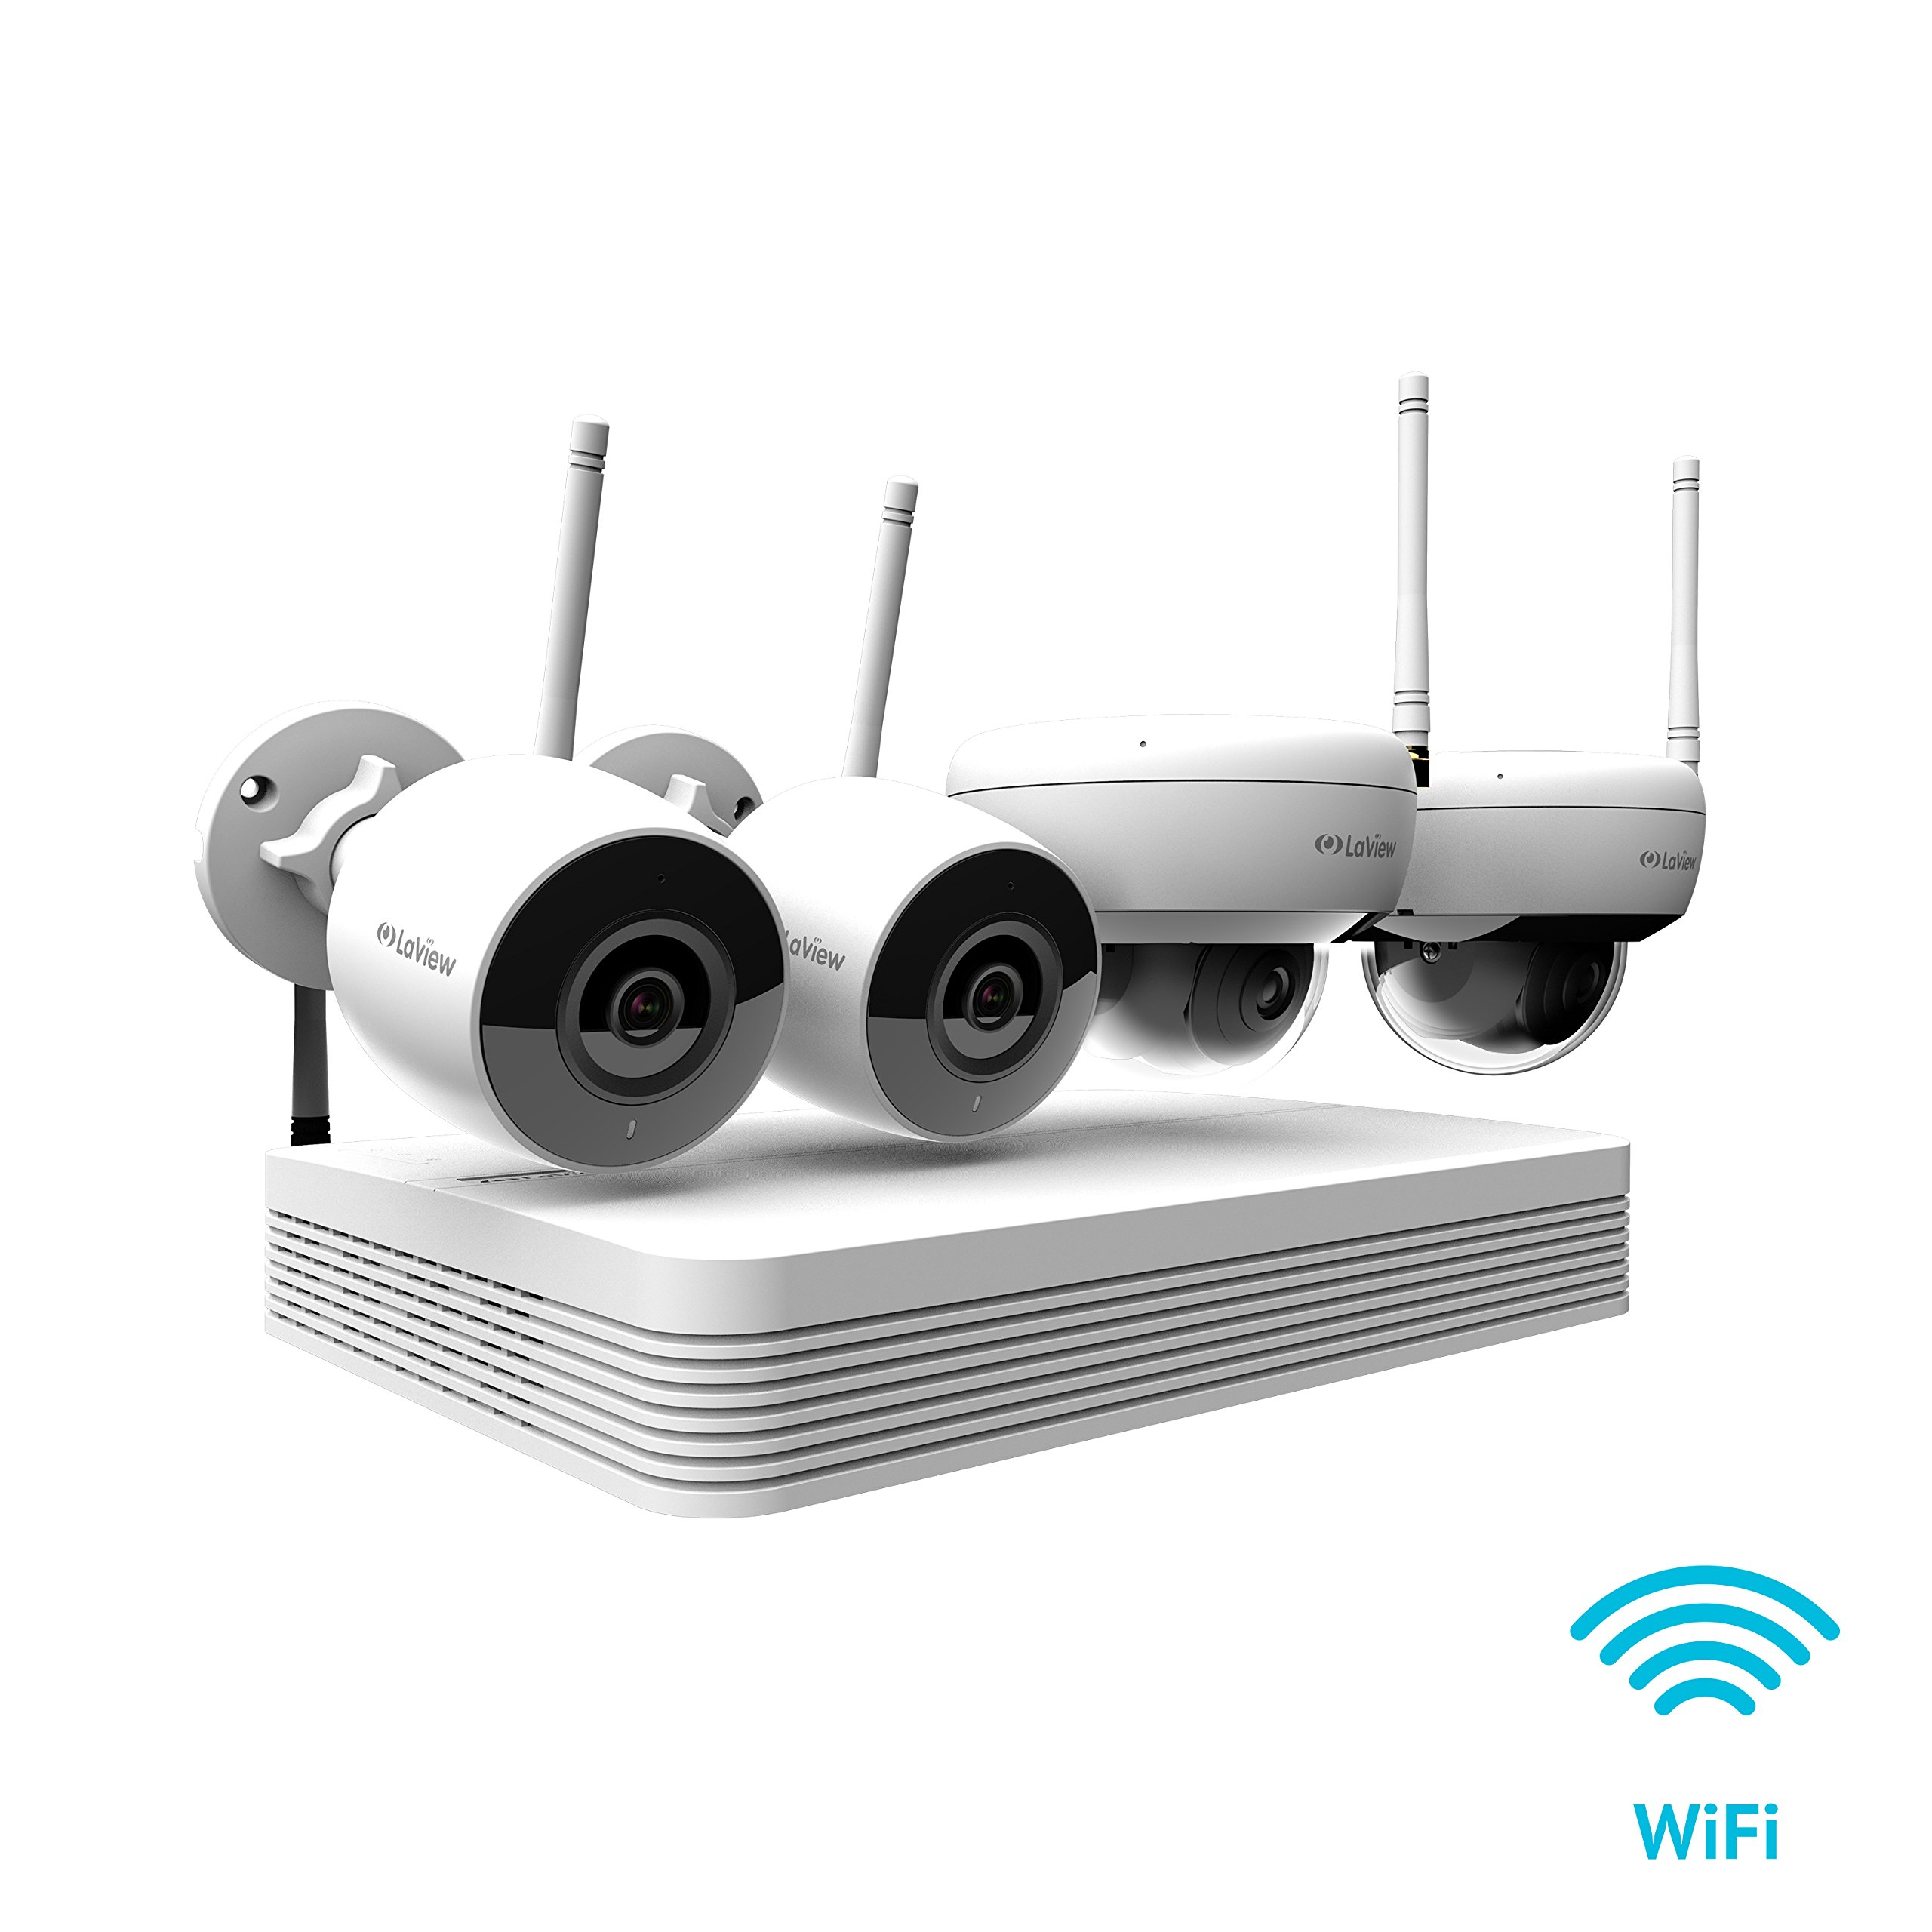 LaView Wi-Fi Wireless Security Camera System 8 Channel 1080P HD Audio & Video H.265 NVR 2TB, 2xbullet & 2X Dome Indoor/Outdoor Wi-Fi Camera,500Ft WiFi Range,Mobile Alerts by LaView